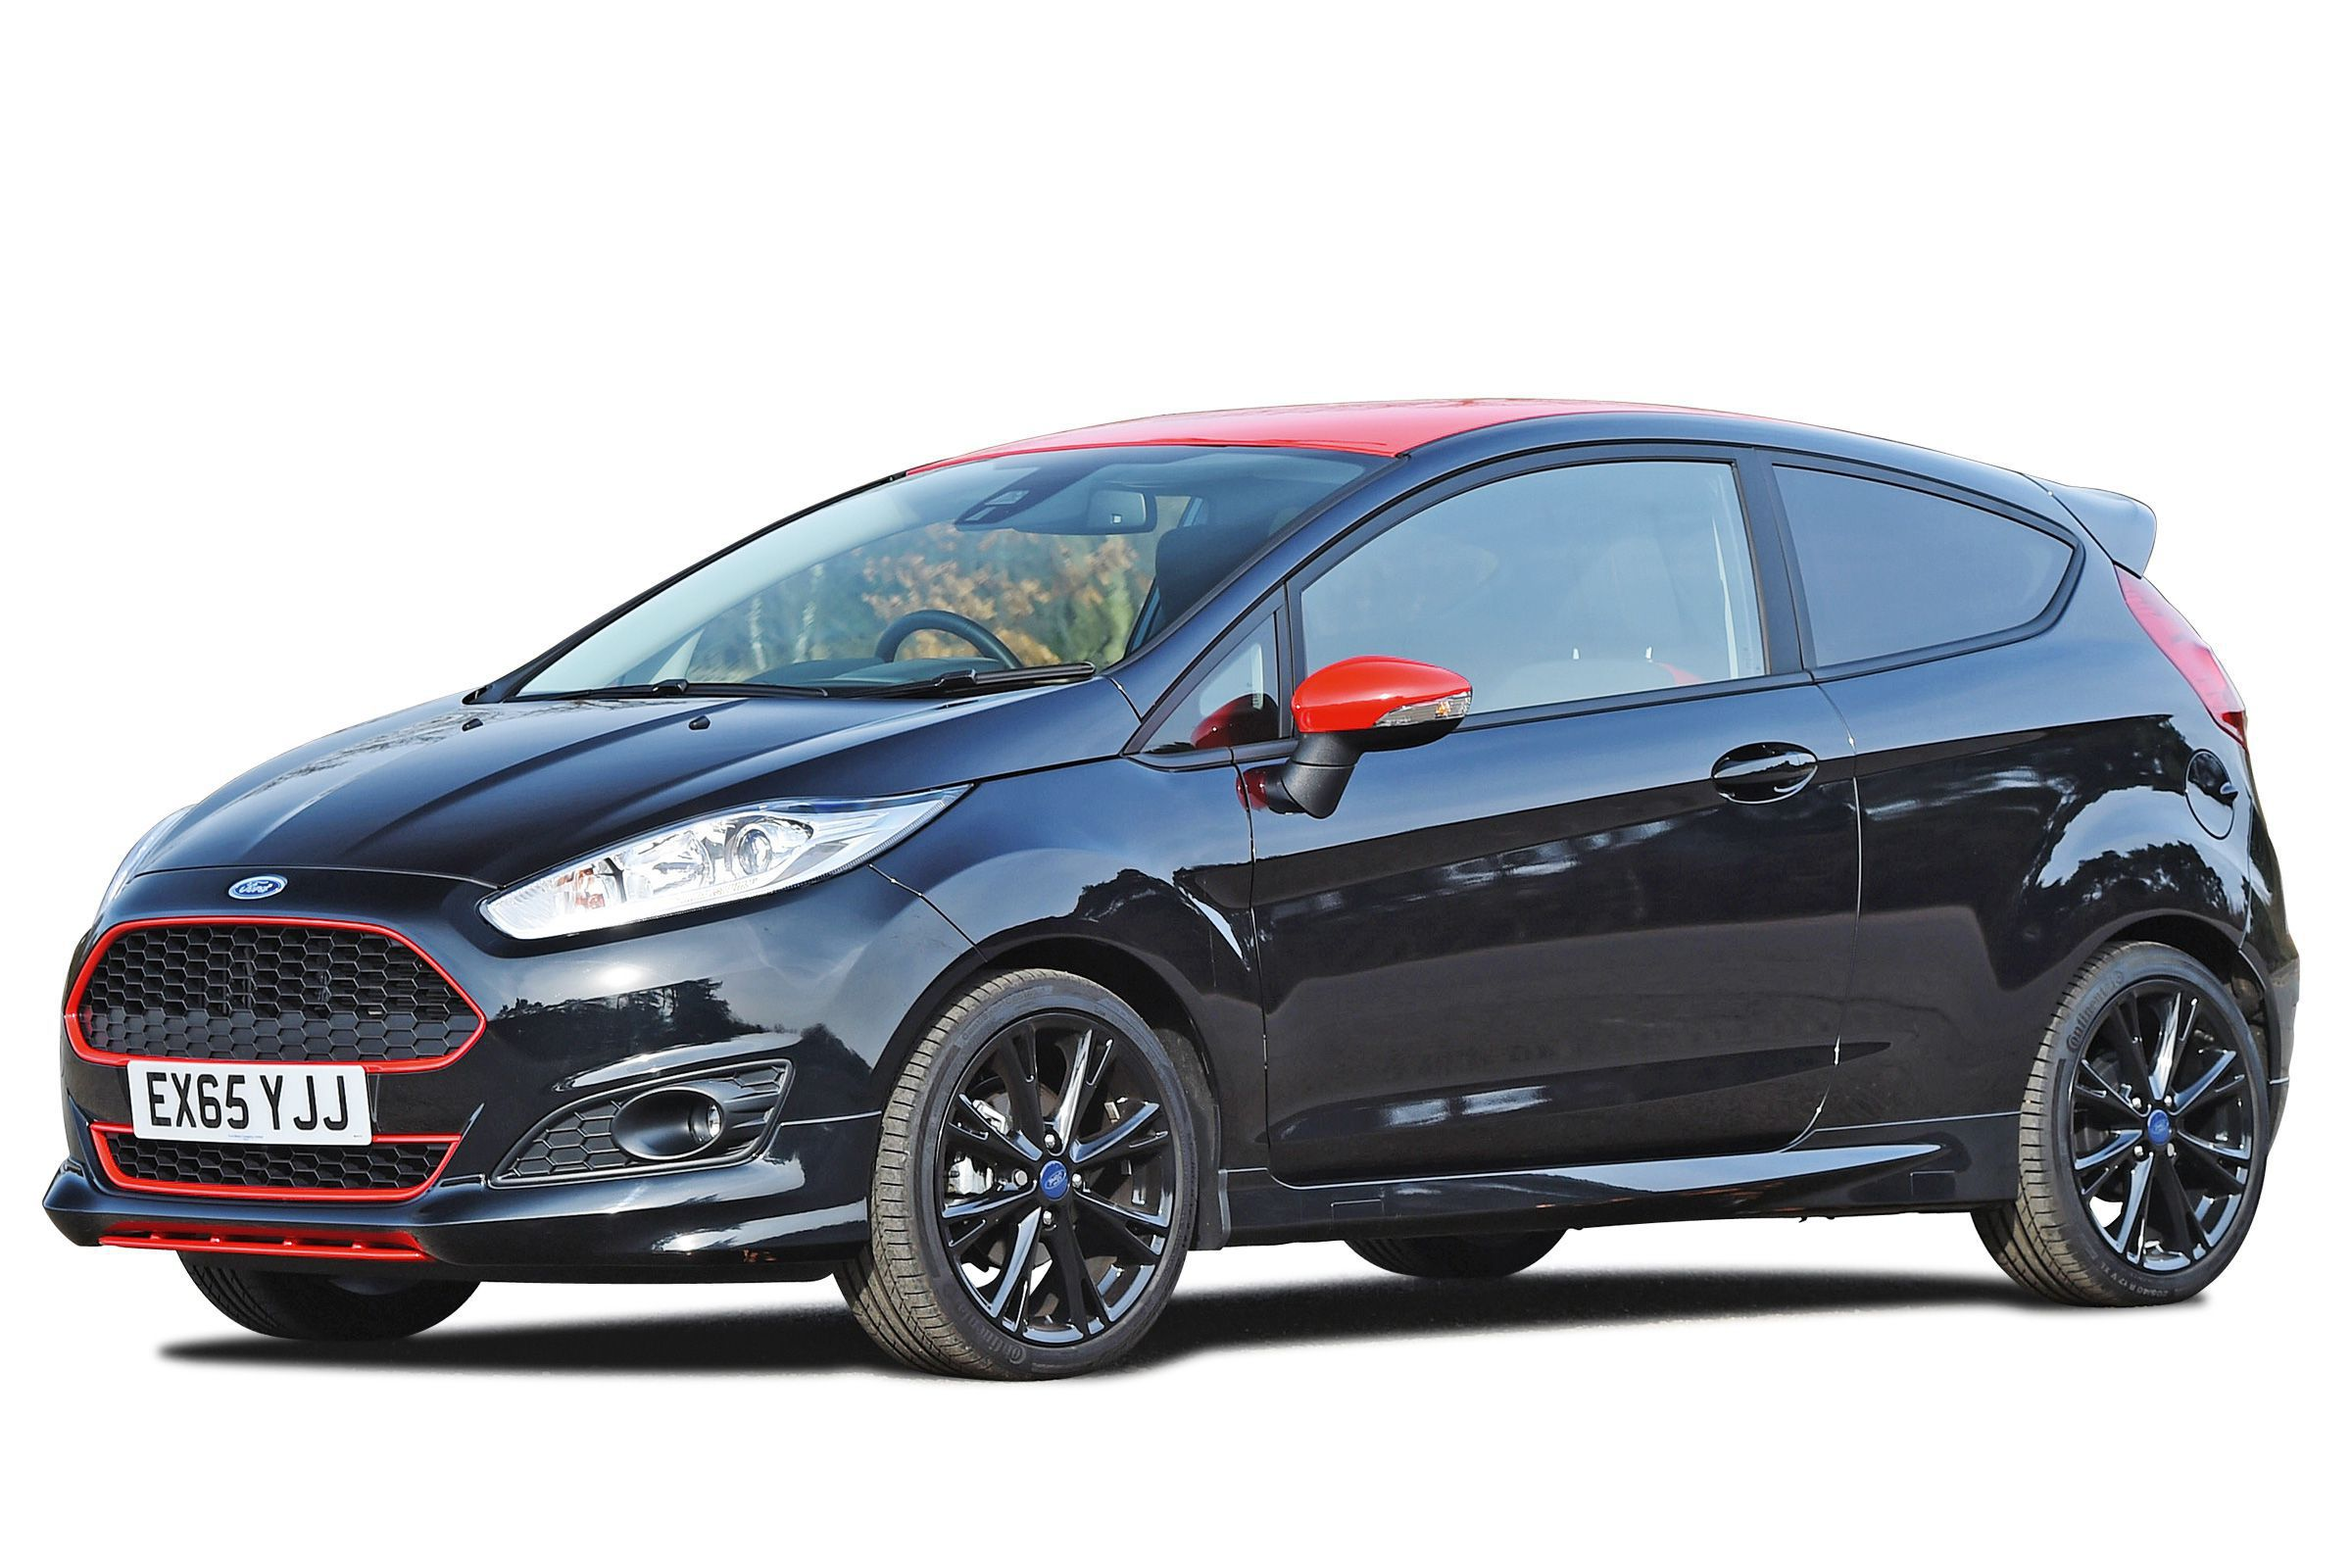 Ford Fiesta High Definition Wallpapers